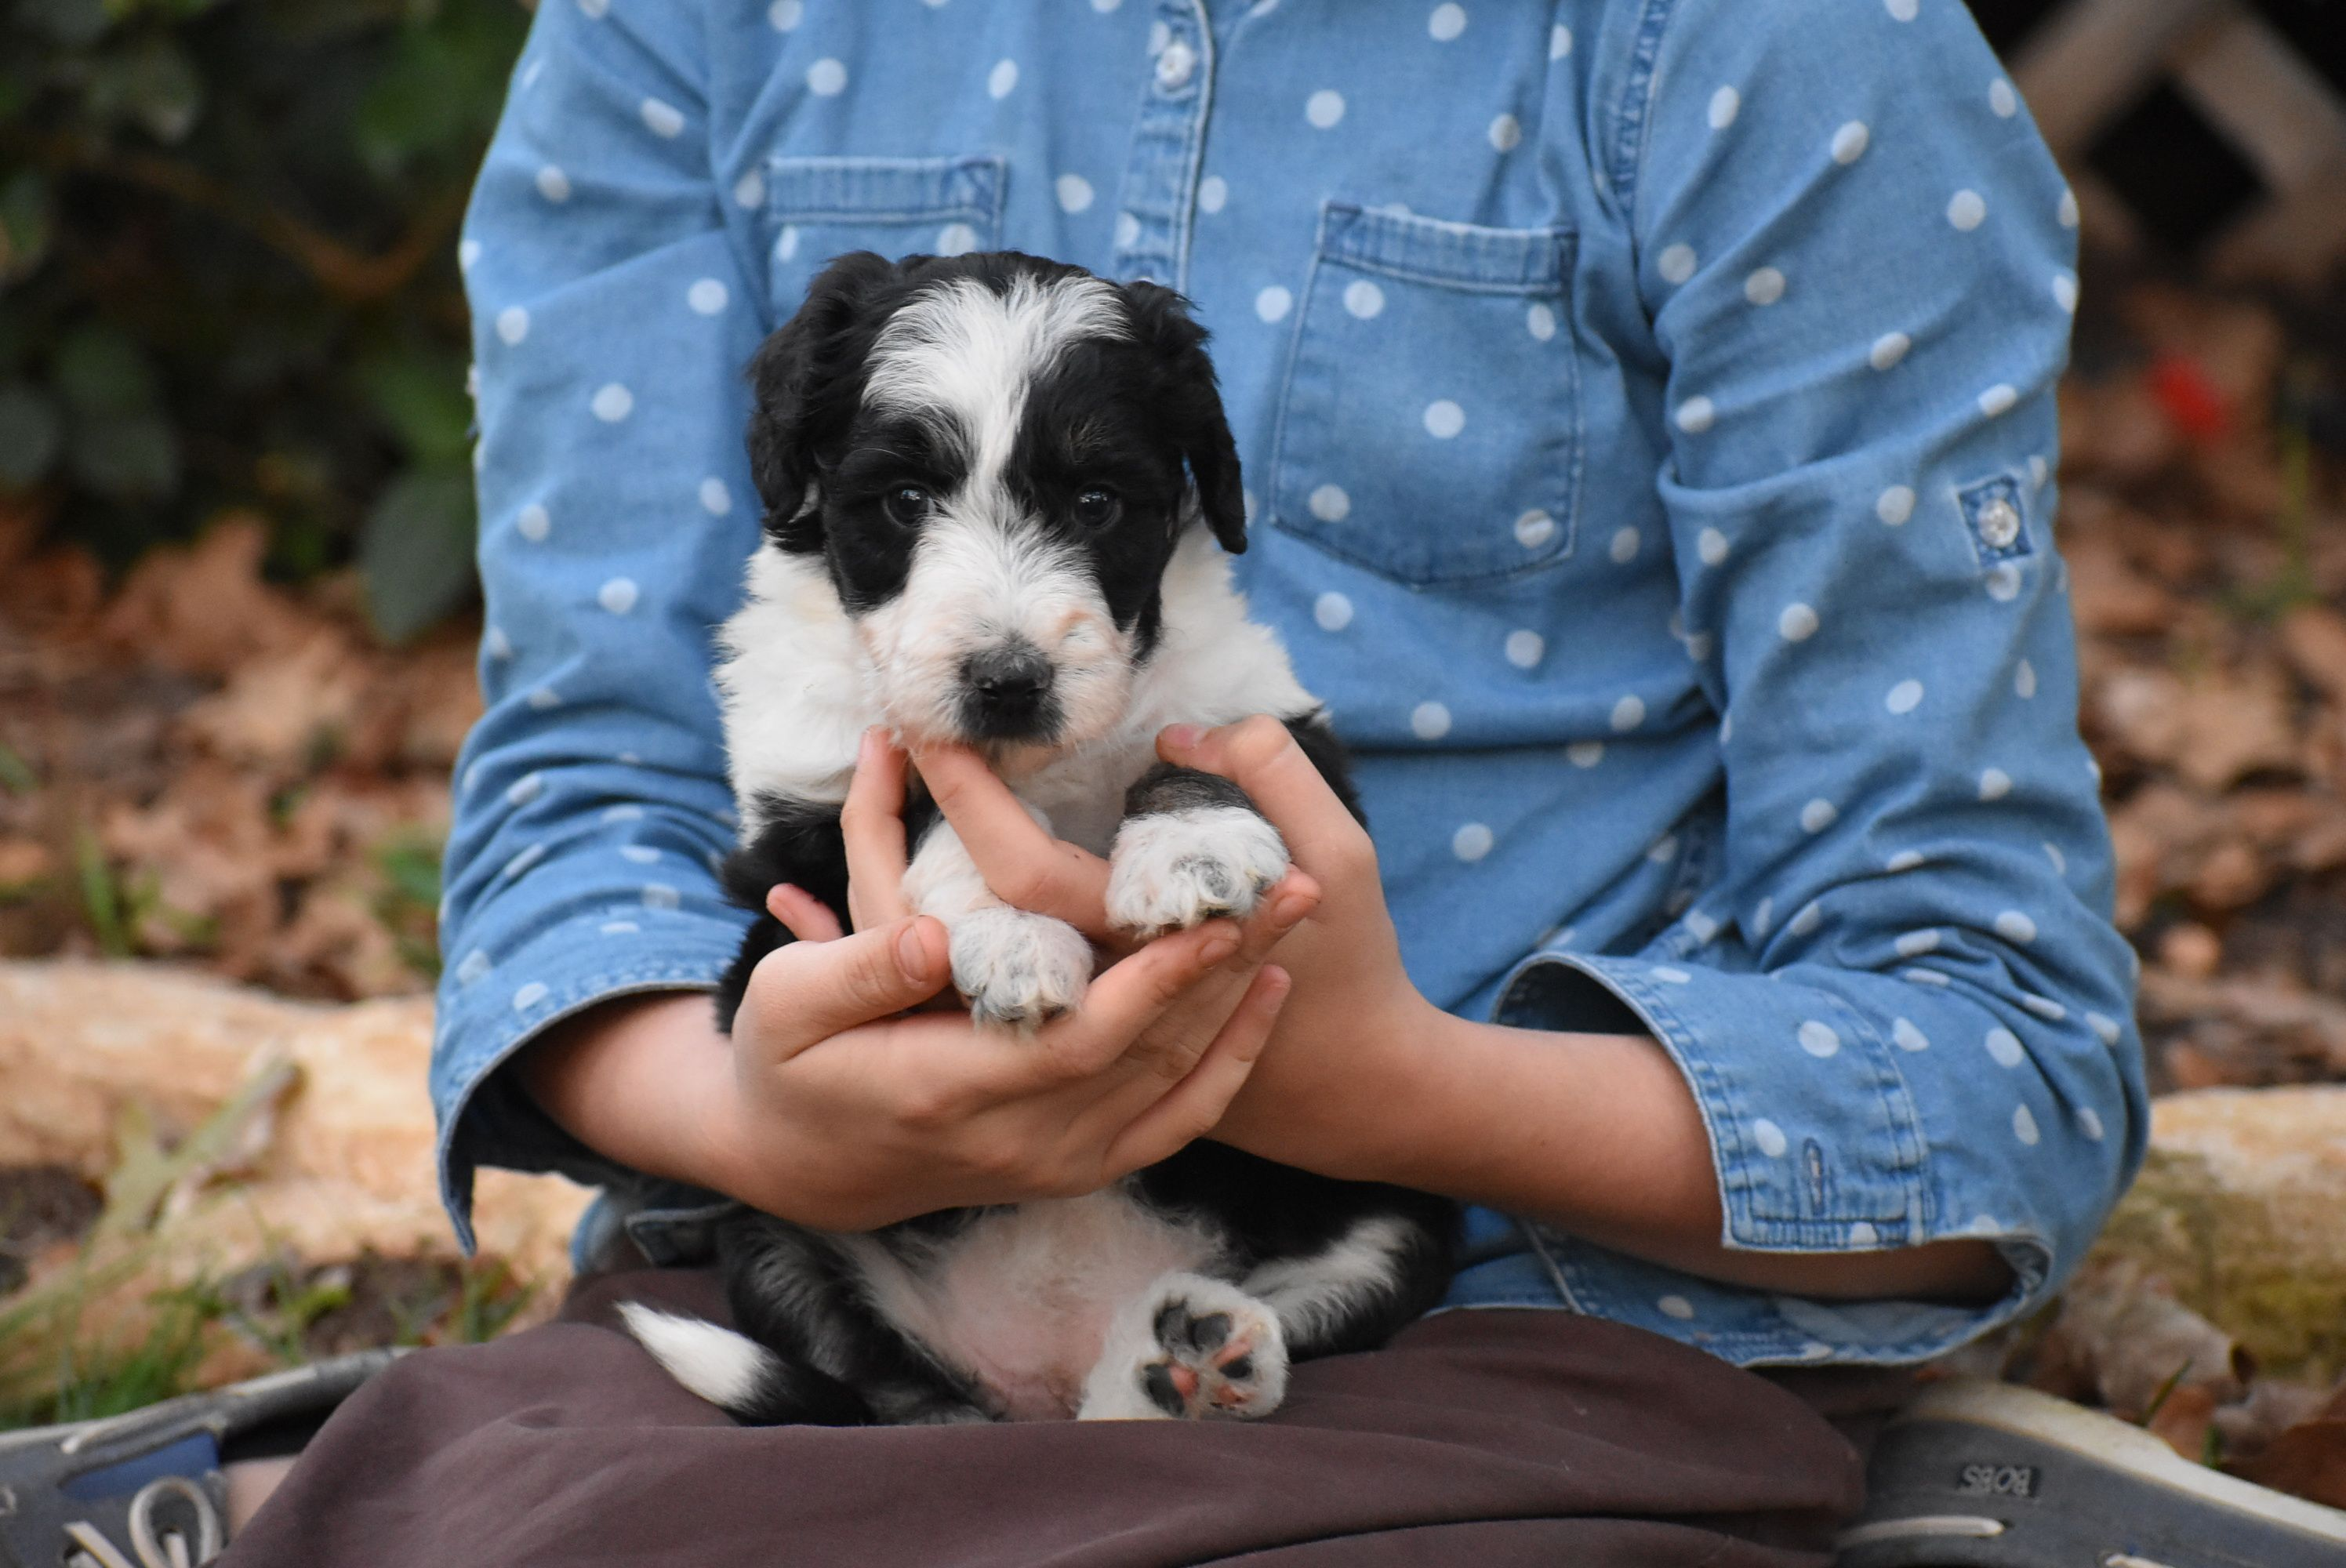 Sparkle 6 Week Old Bordoodle Puppy Poodle Puppies For Sale Poodle Puppy Puppies For Sale